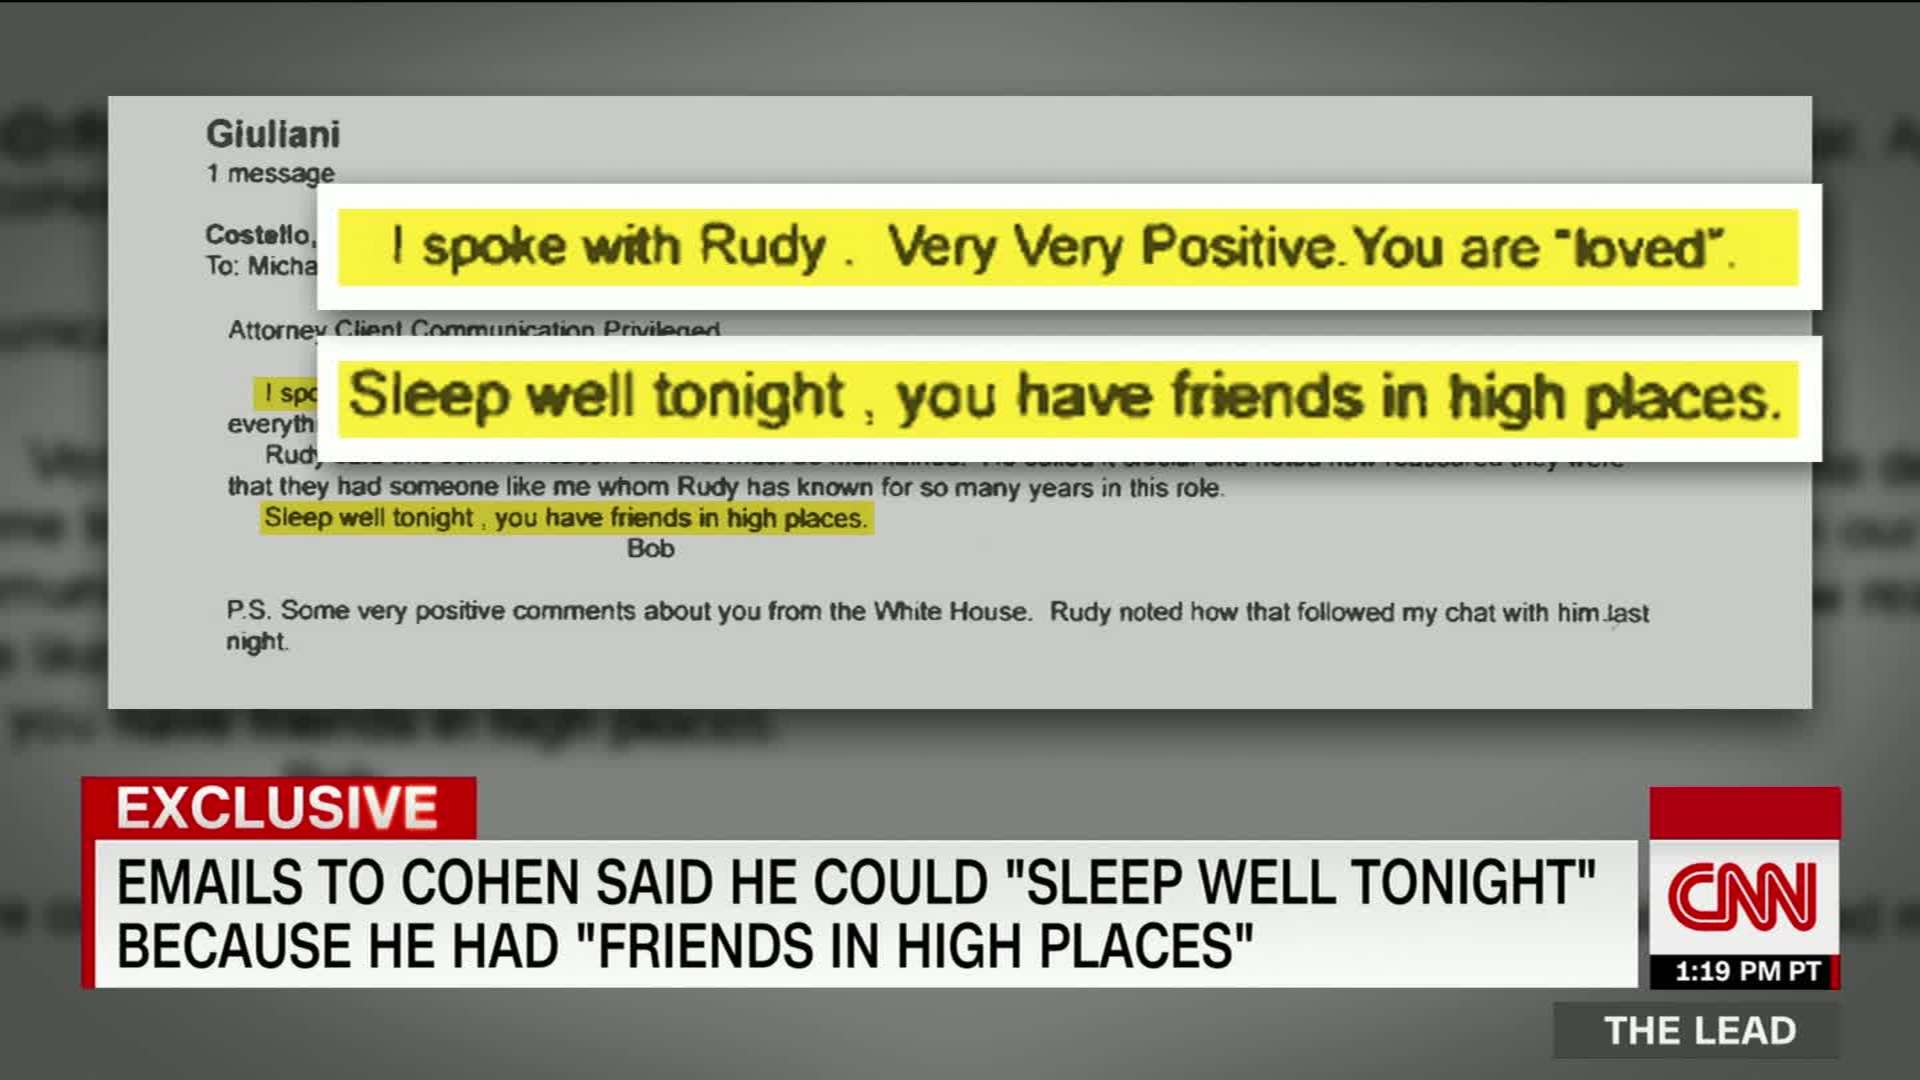 Lawyer told Cohen he could 'sleep well tonight' after talking with Giuliani